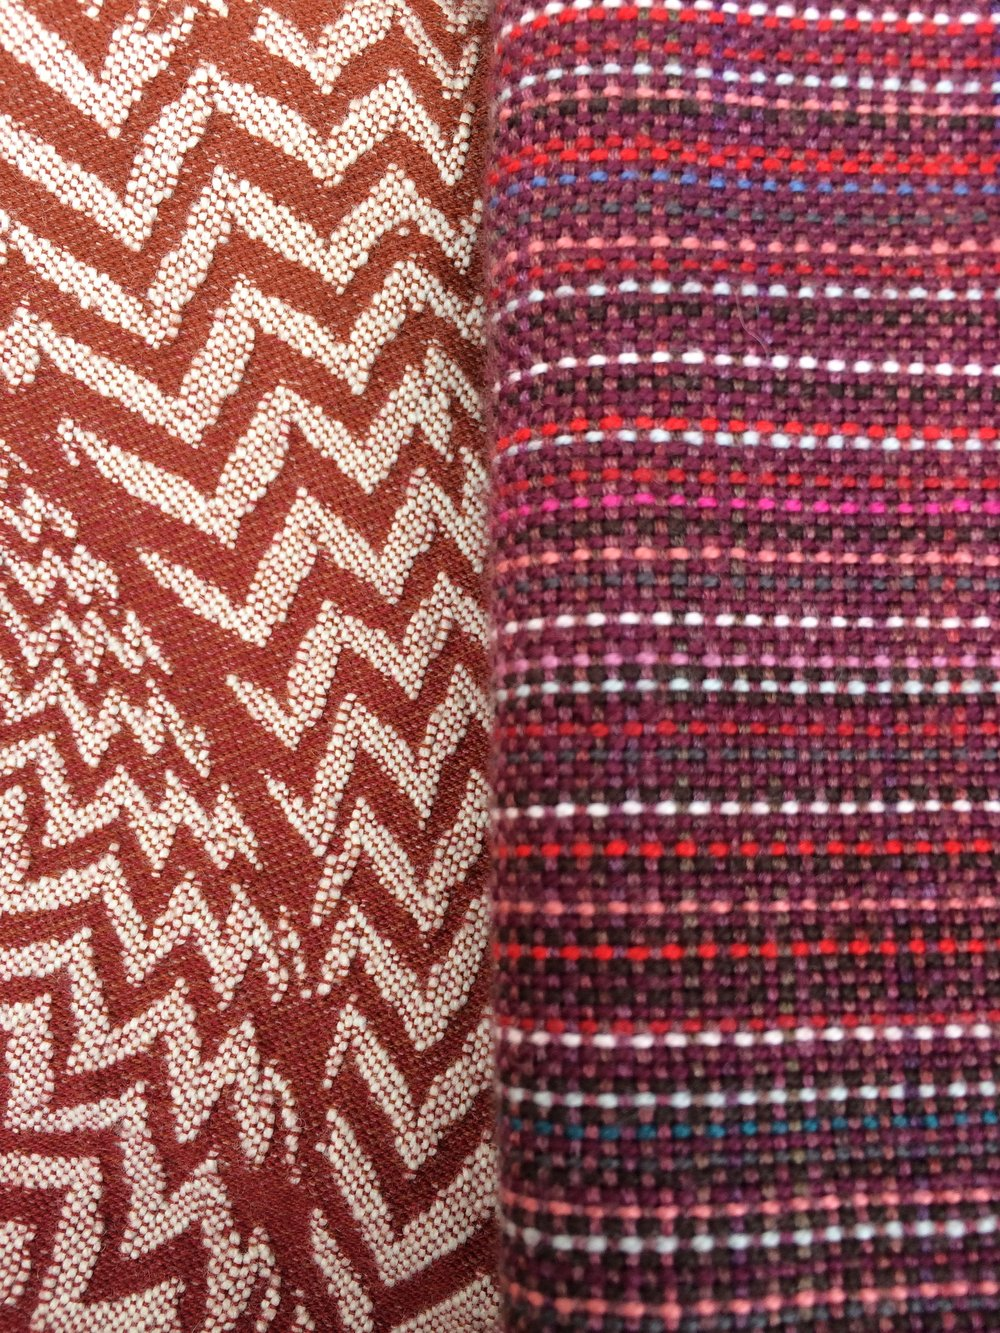 A tight, dense machine weave (left) next to a looser weave handwoven (right).